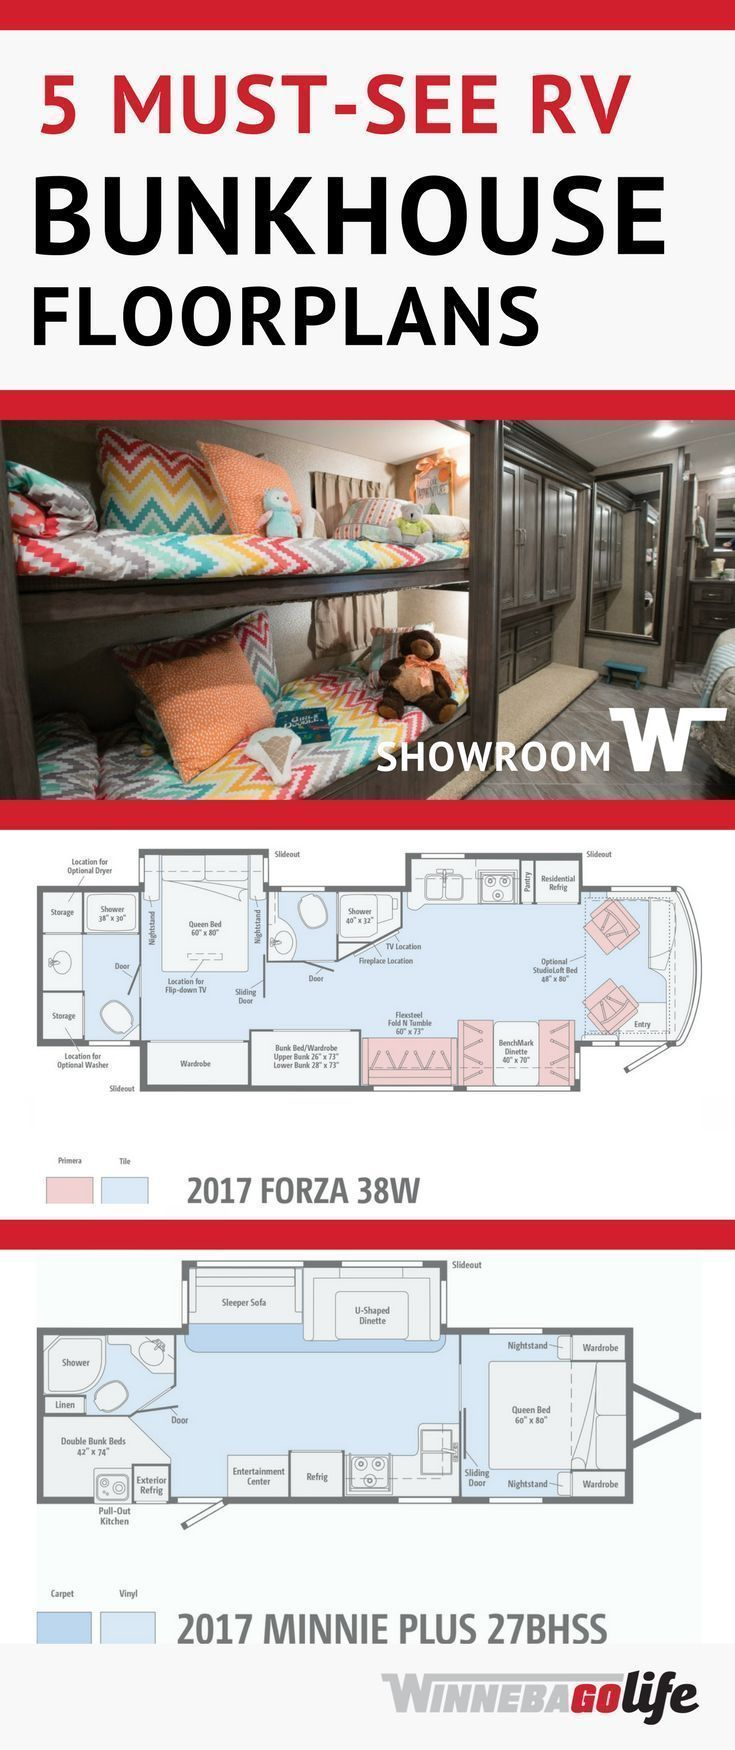 diagram of bunkhouse 5 must see rv bunkhouse floorplans  with images  travel trailer  5 must see rv bunkhouse floorplans